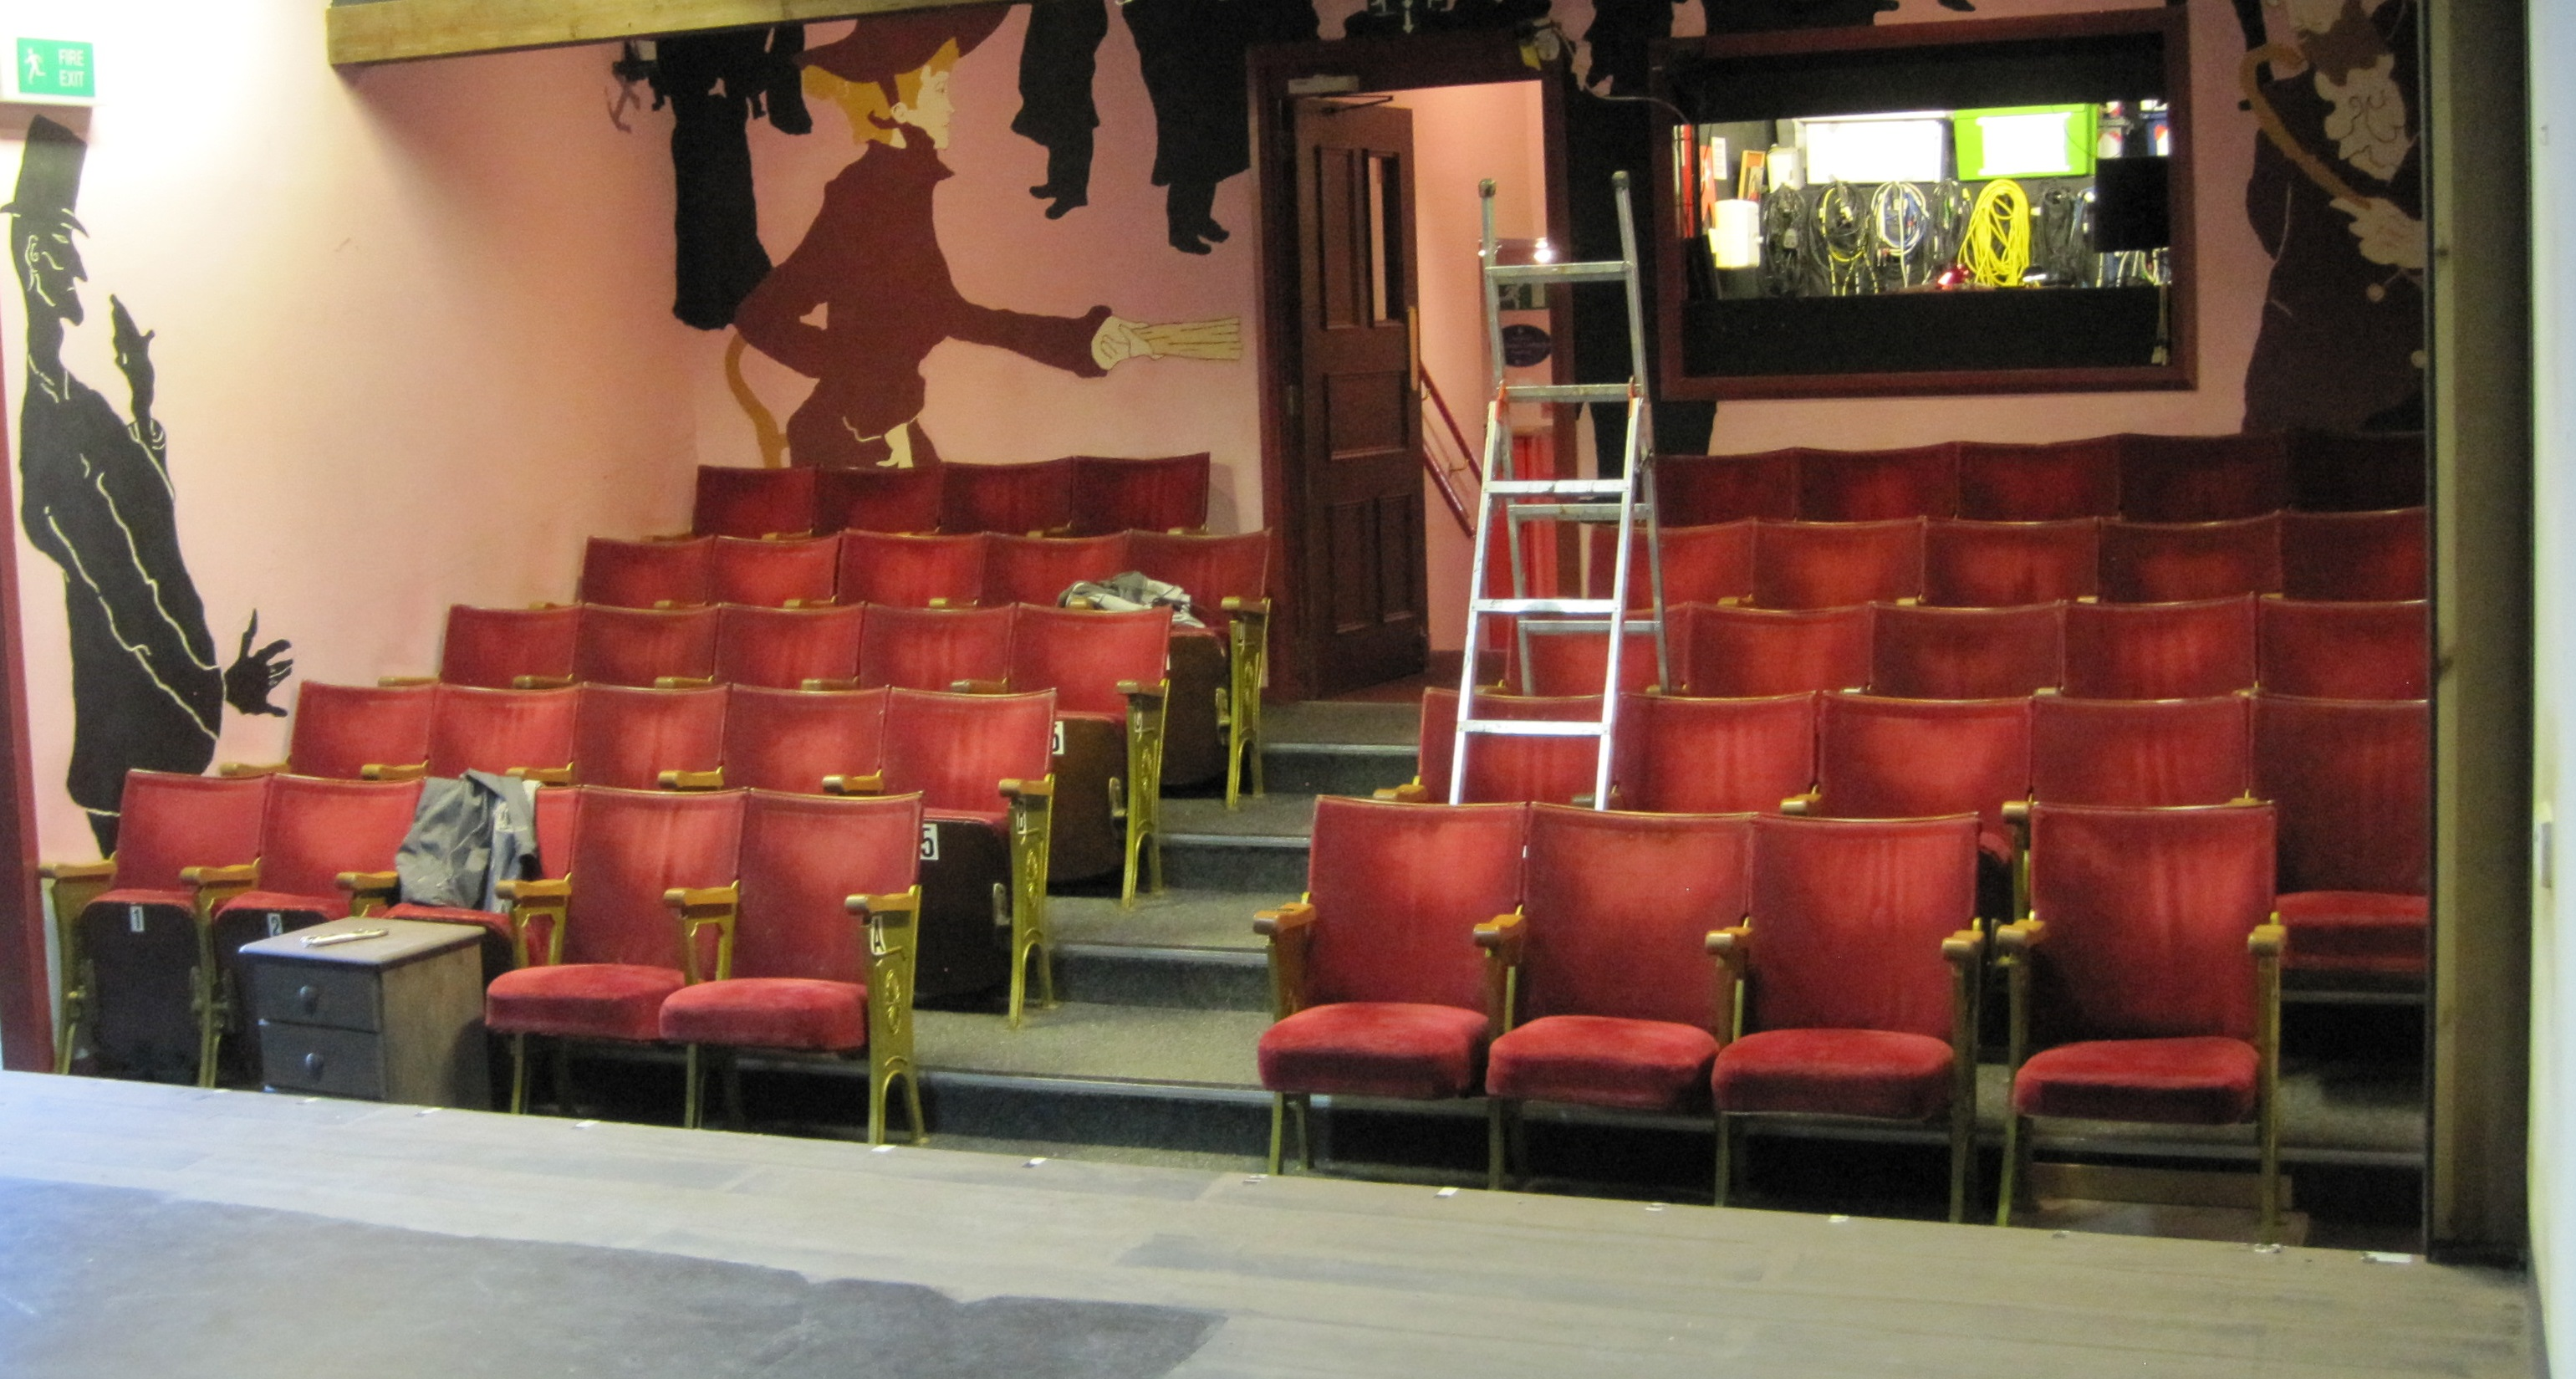 Auditorium at Dibble Tree Theatre before refurbishment